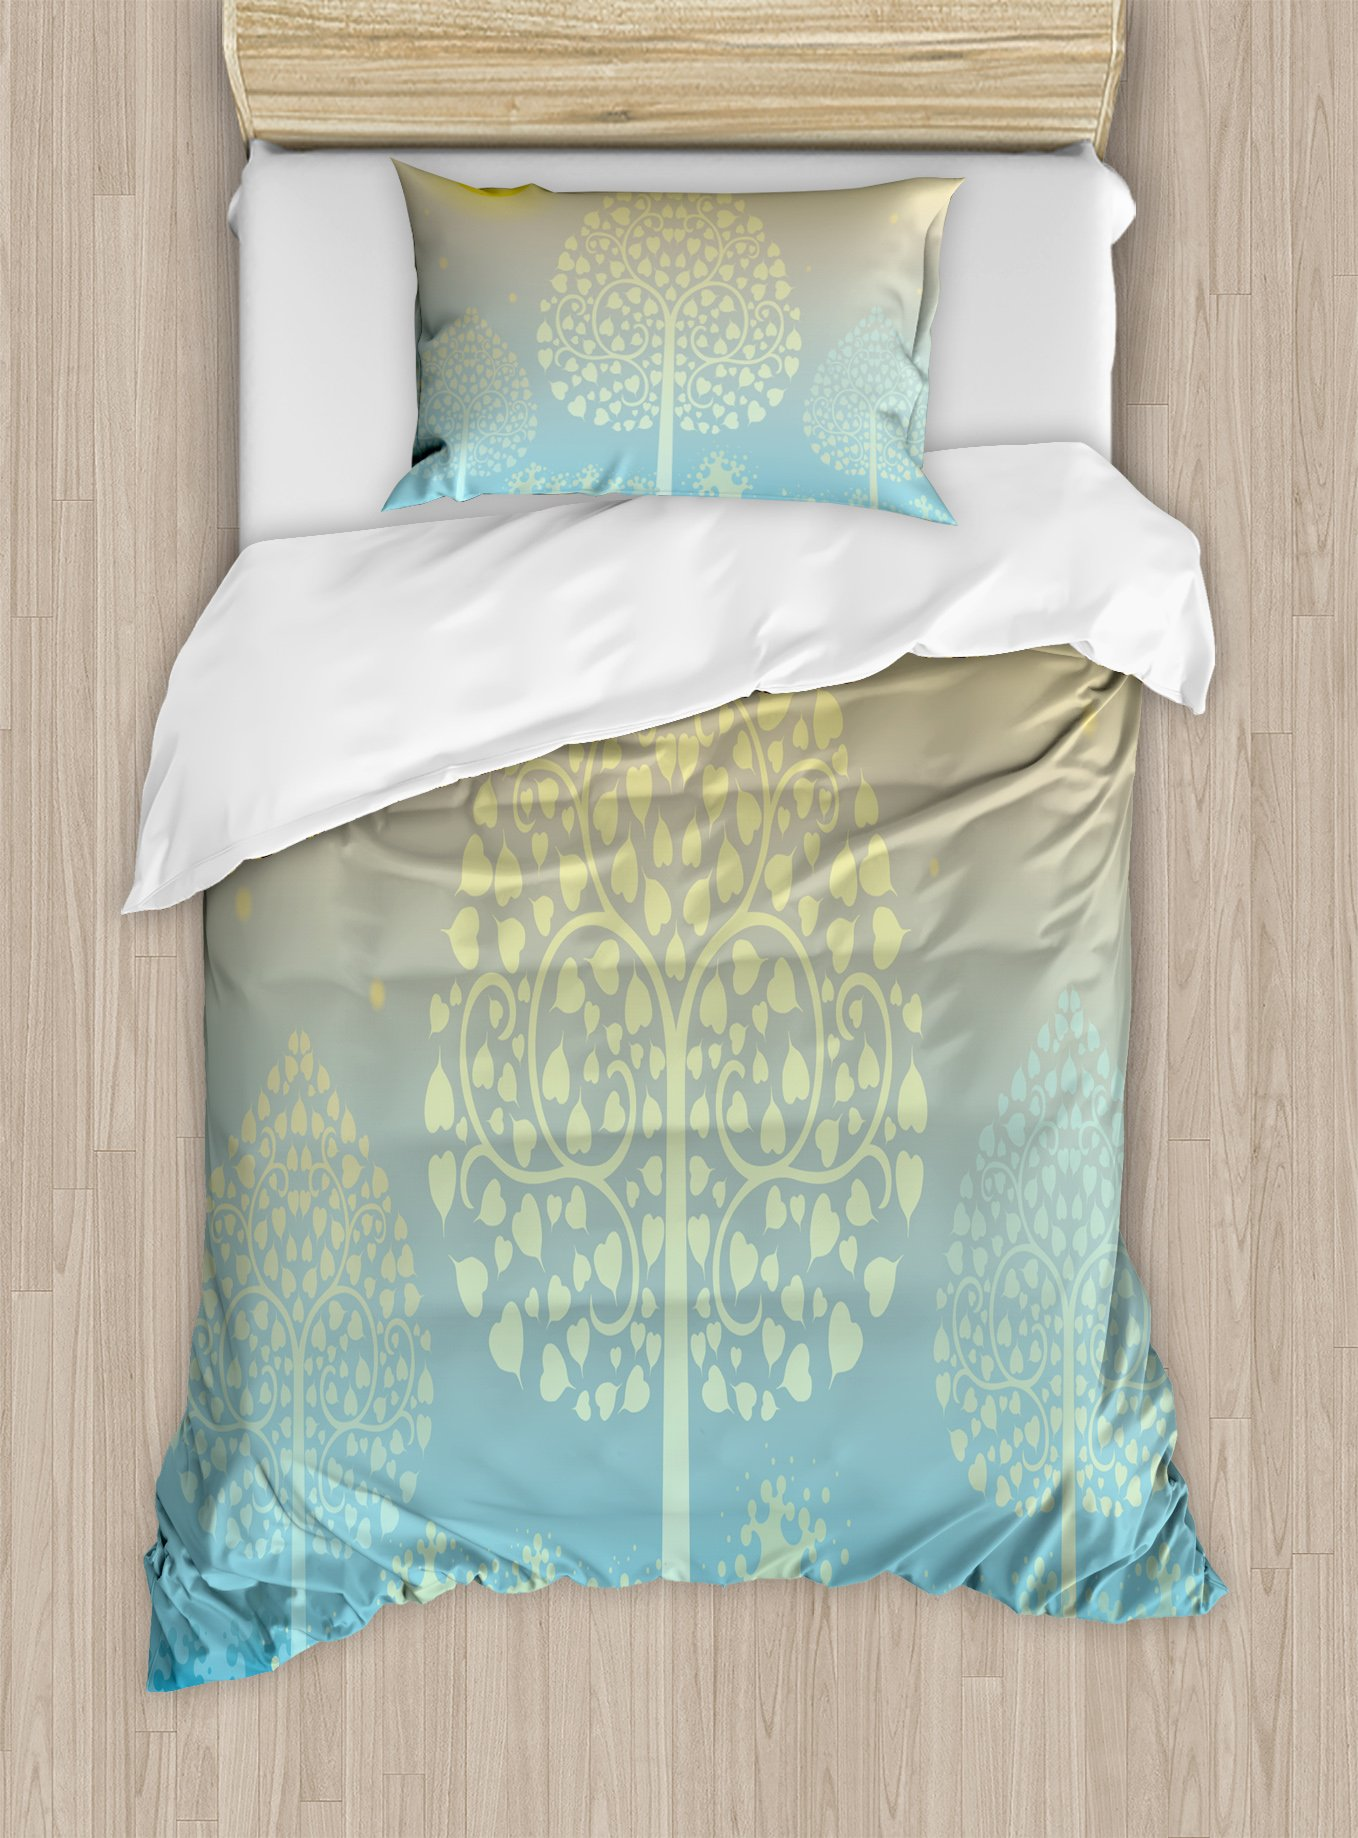 Ambesonne Art Duvet Cover Set Twin Size, Thai Pattern Design Illustration of Gold Tree Oriental Culture Asia Eastern Ways, Decorative 2 Piece Bedding Set with 1 Pillow Sham, Gold Sky Blue